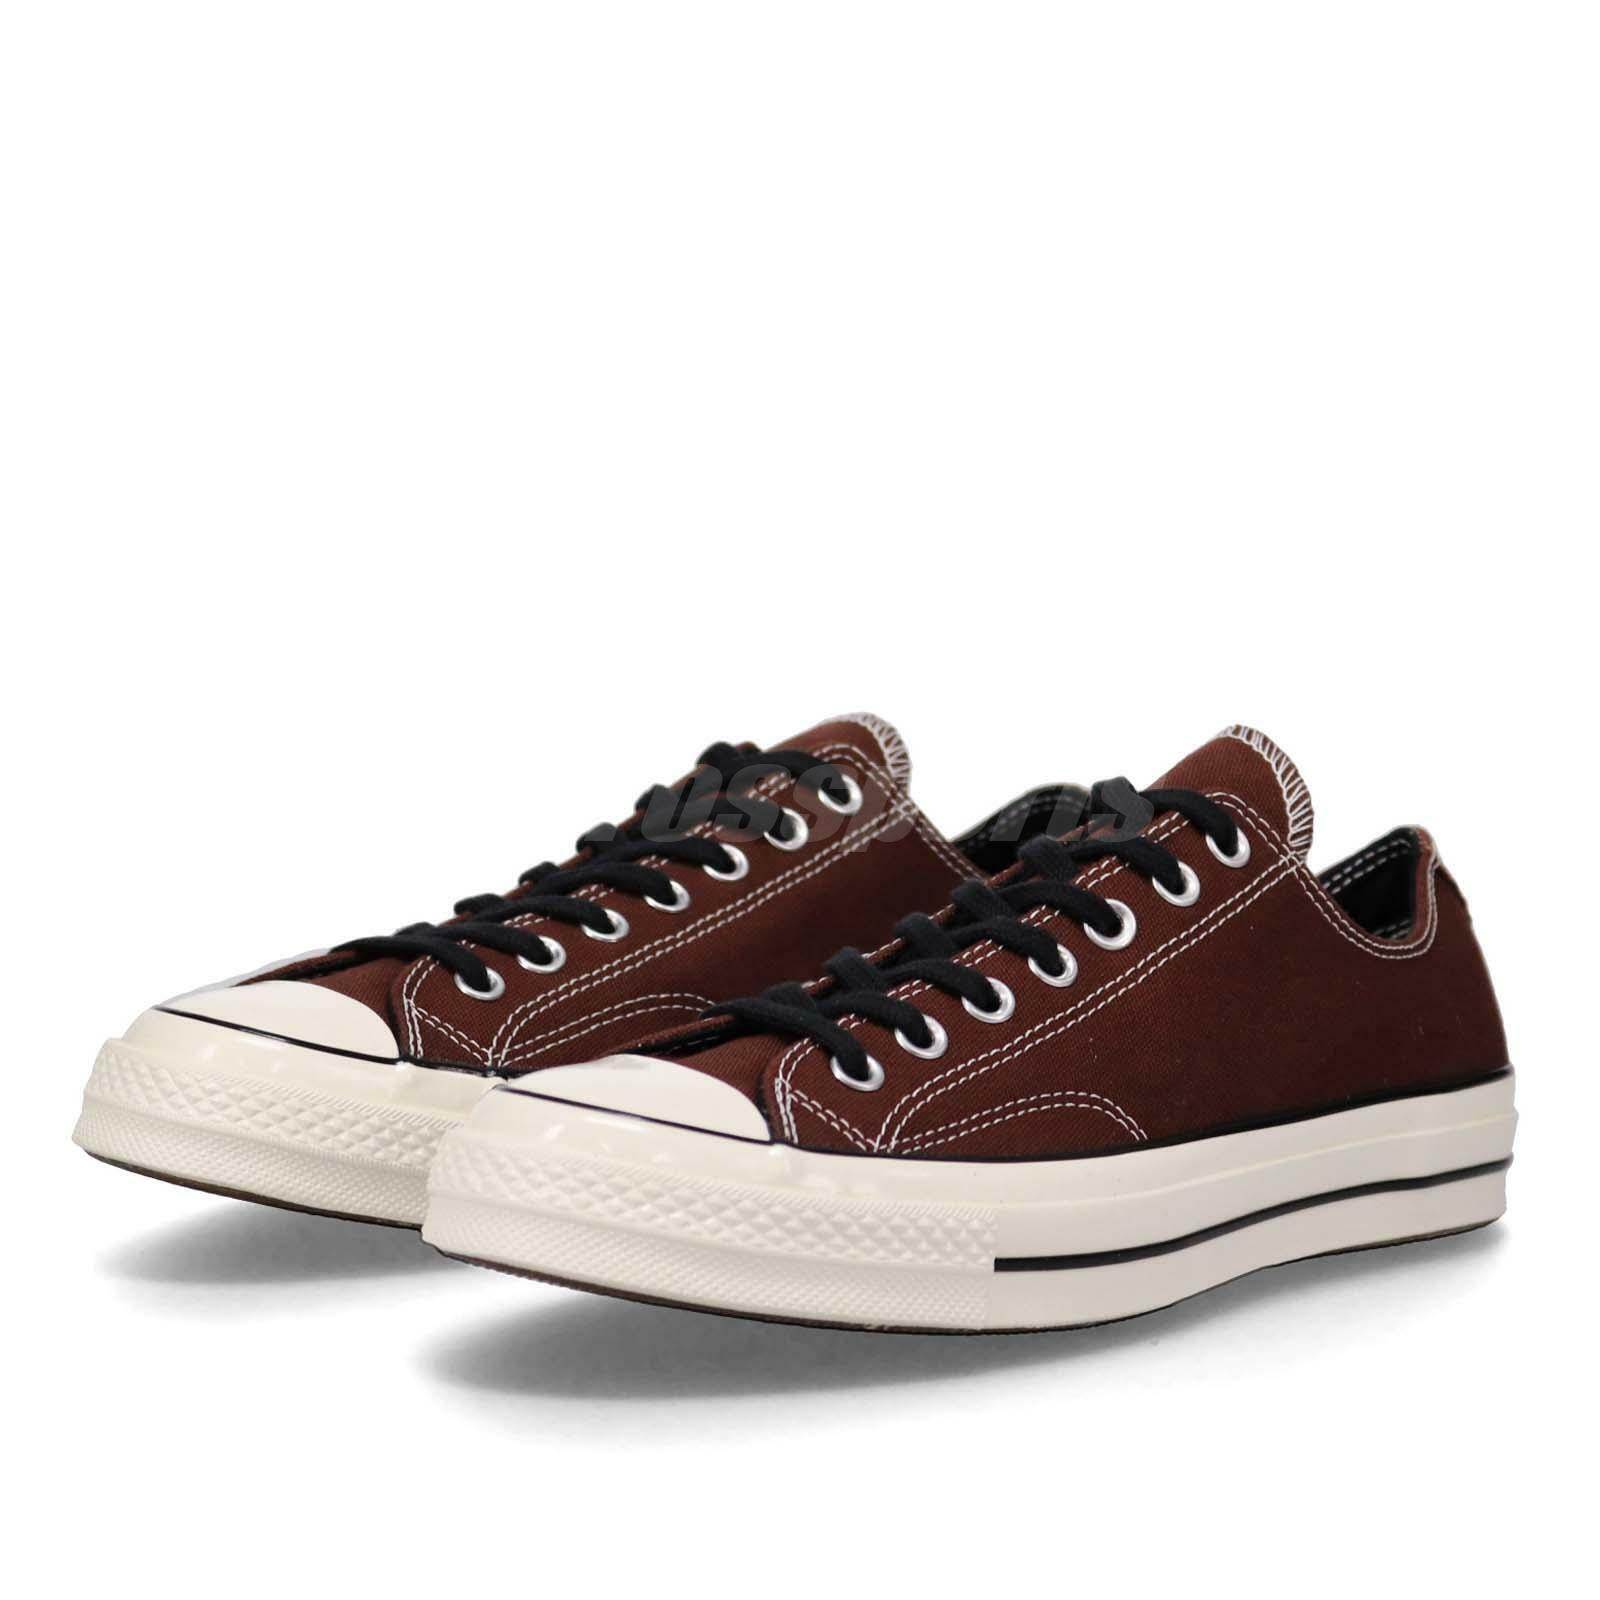 Converse First String Chuck Taylor All Star 70 OX marron hommes femmes chaussures 163334C